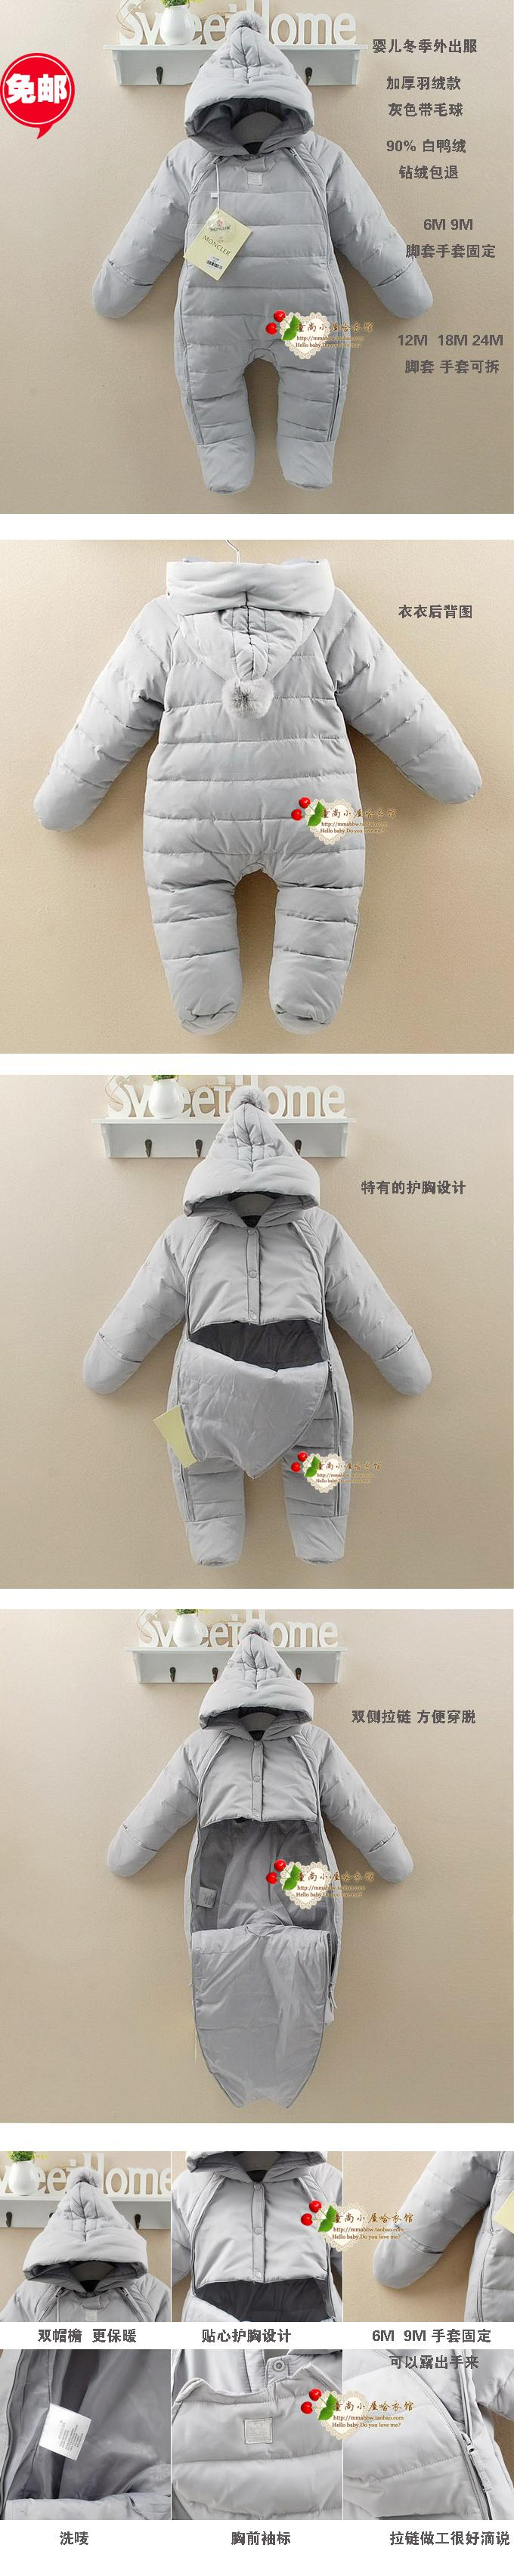 F11 free shipping baby Siamese thick winter jackets baby clothes